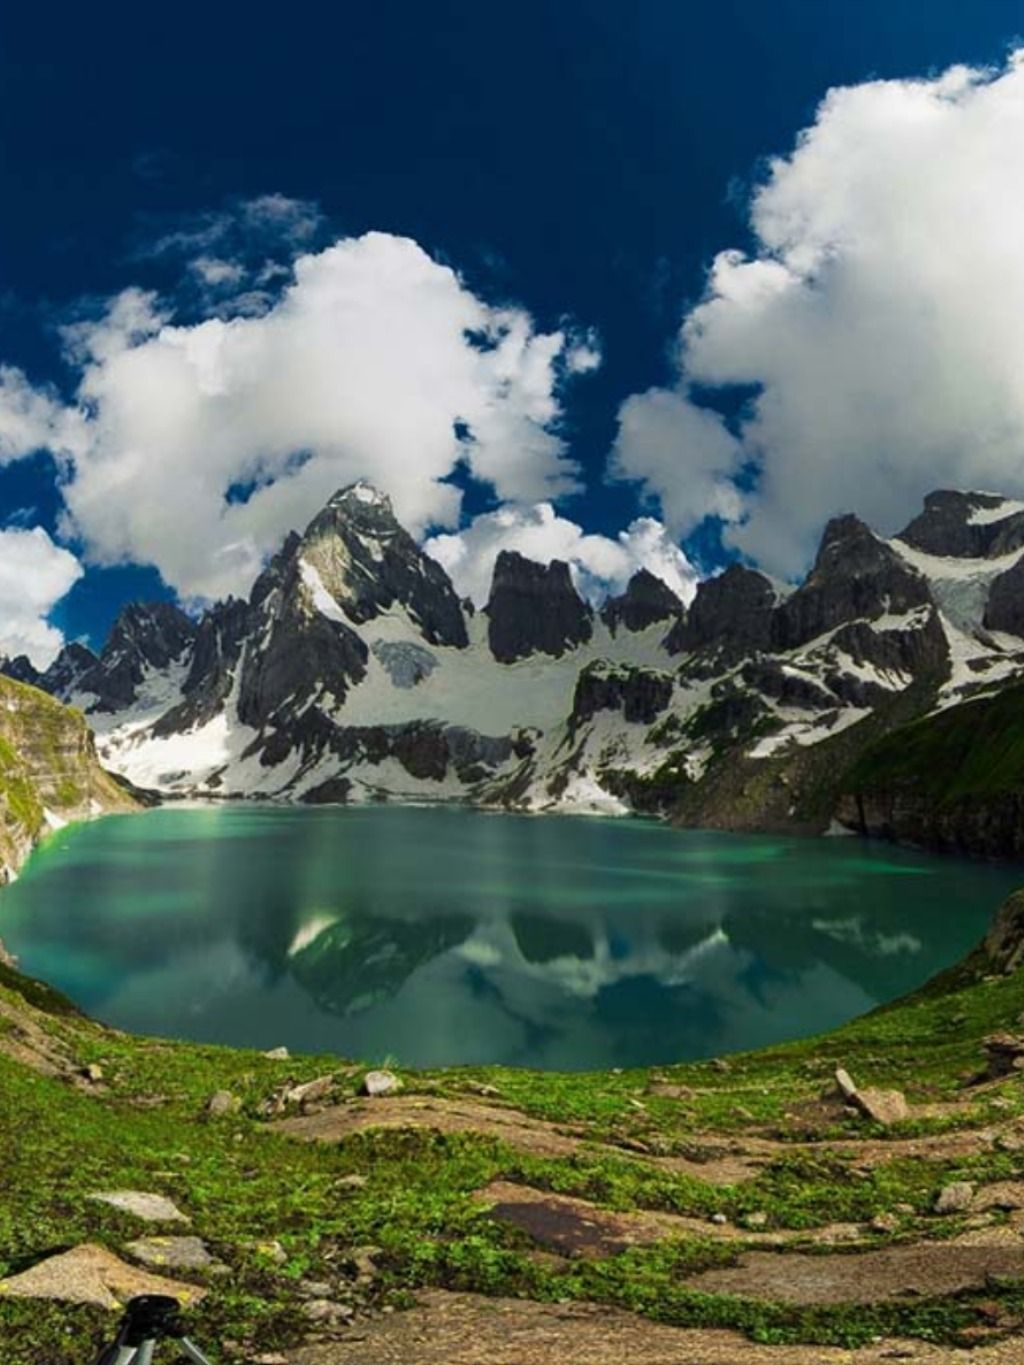 Chitta Katha Lake Azad Kashmir In 2020 With Images Azad